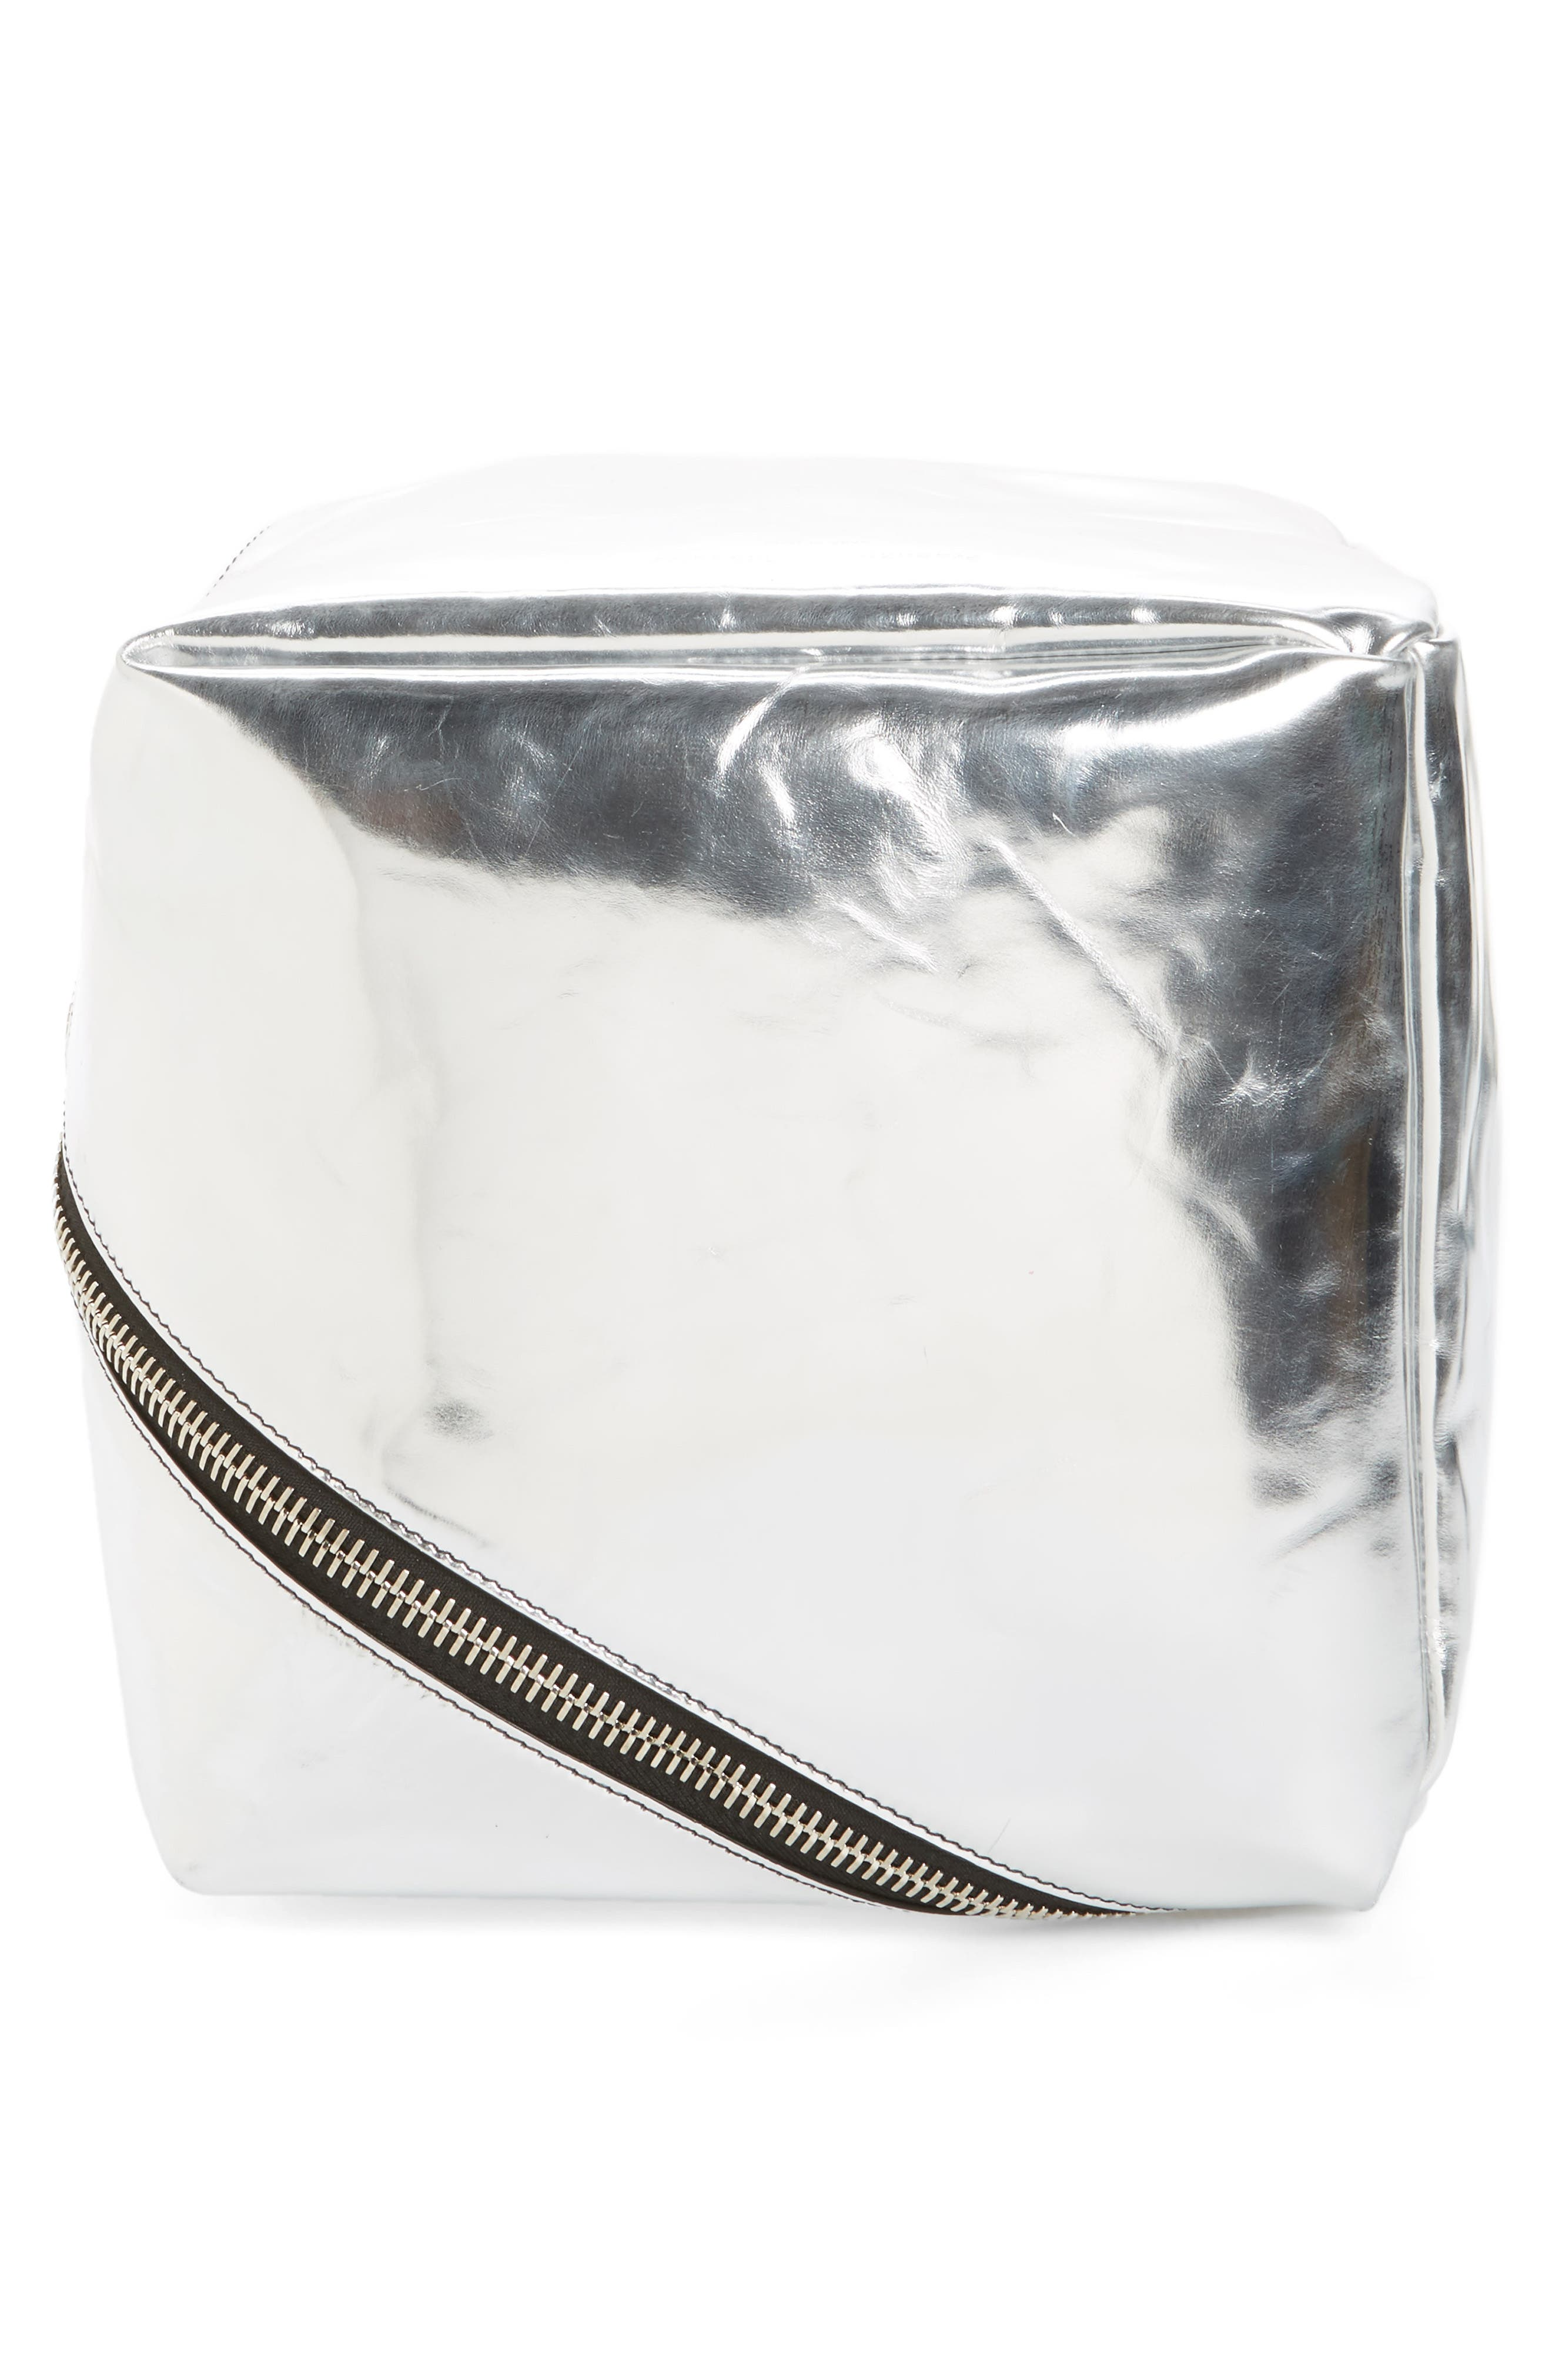 Soft Metallic Leather Cube Bag,                             Alternate thumbnail 3, color,